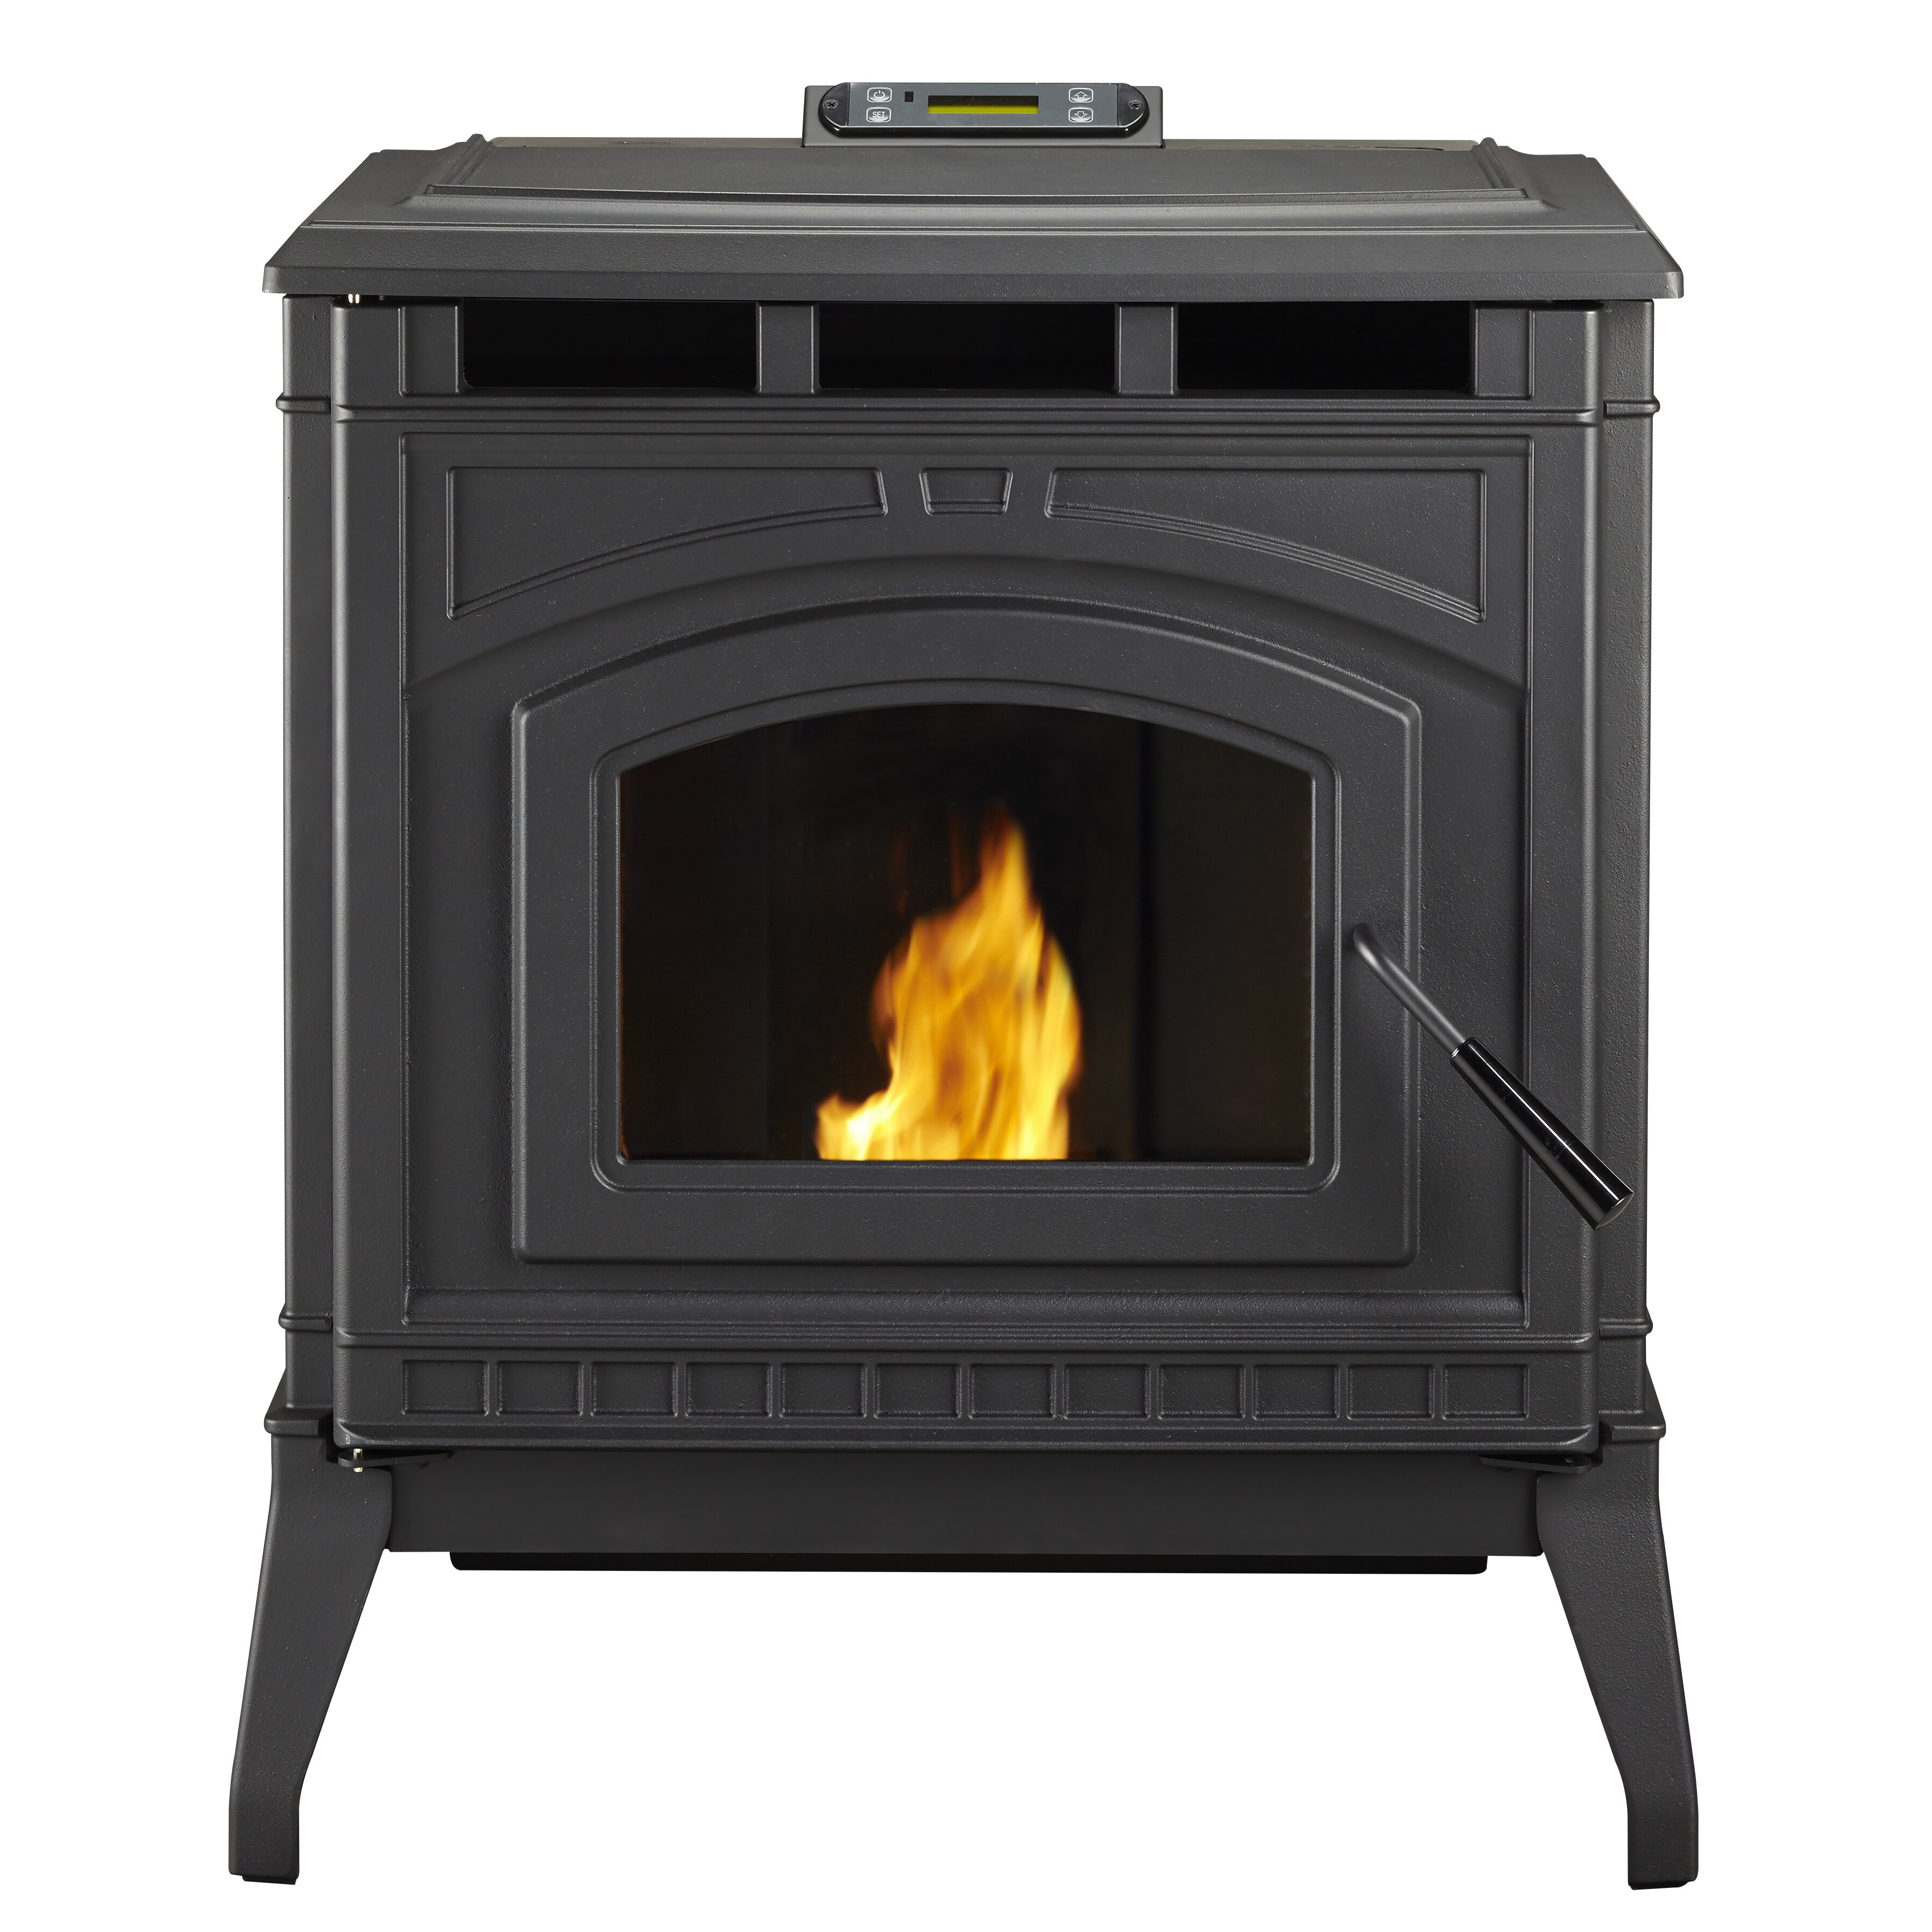 What is The Best Pellet Stove? - Top 5 In-depth Reviews 2018